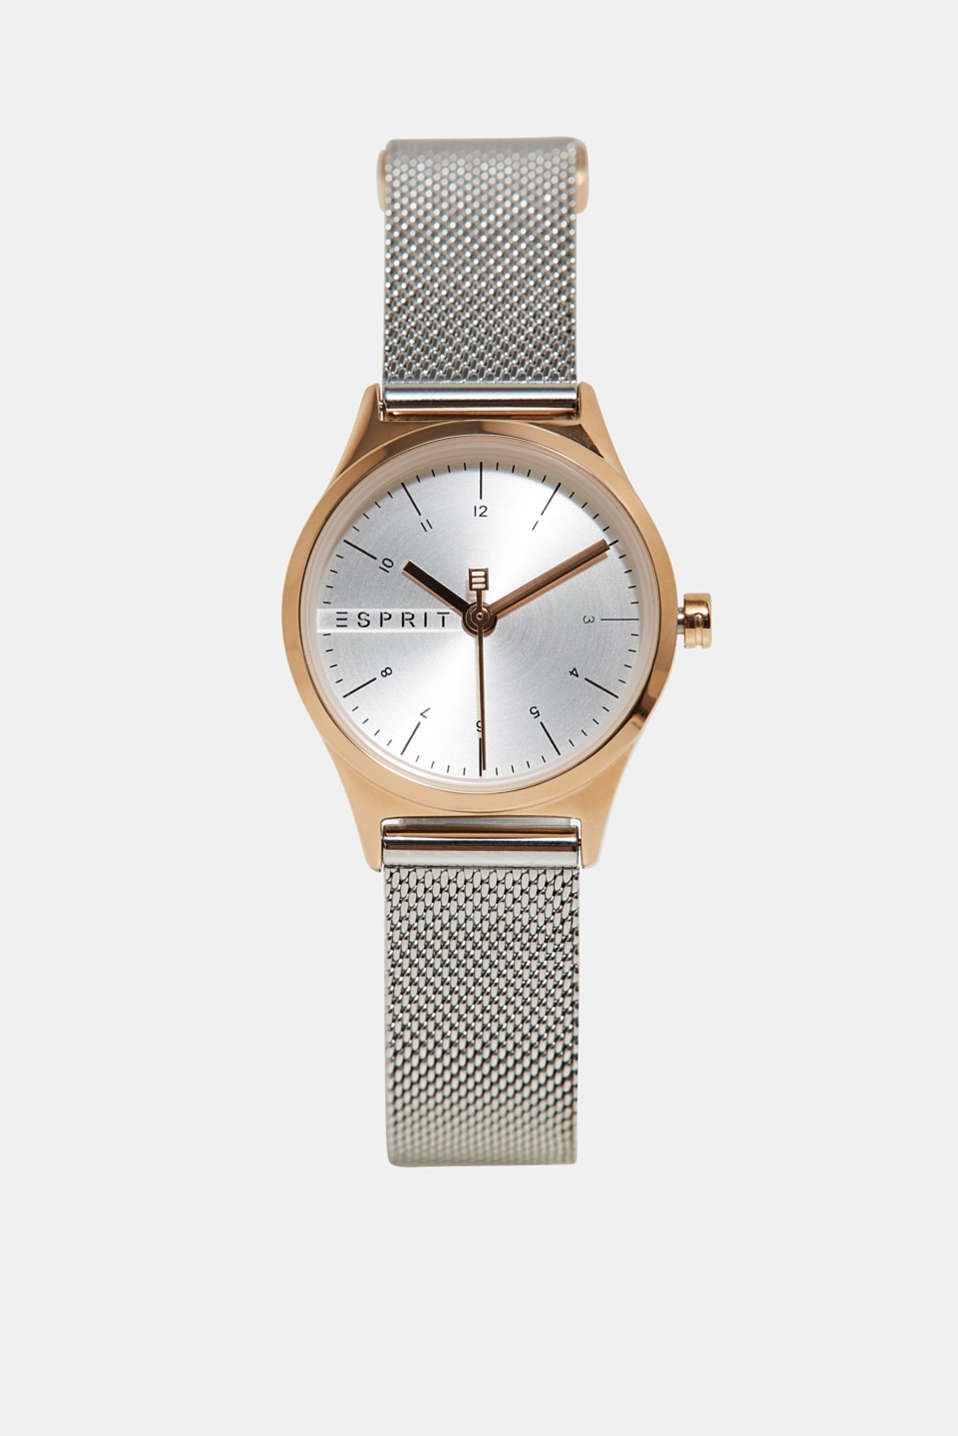 Esprit - Bi-colour watch with a mesh strap made of stainless steel